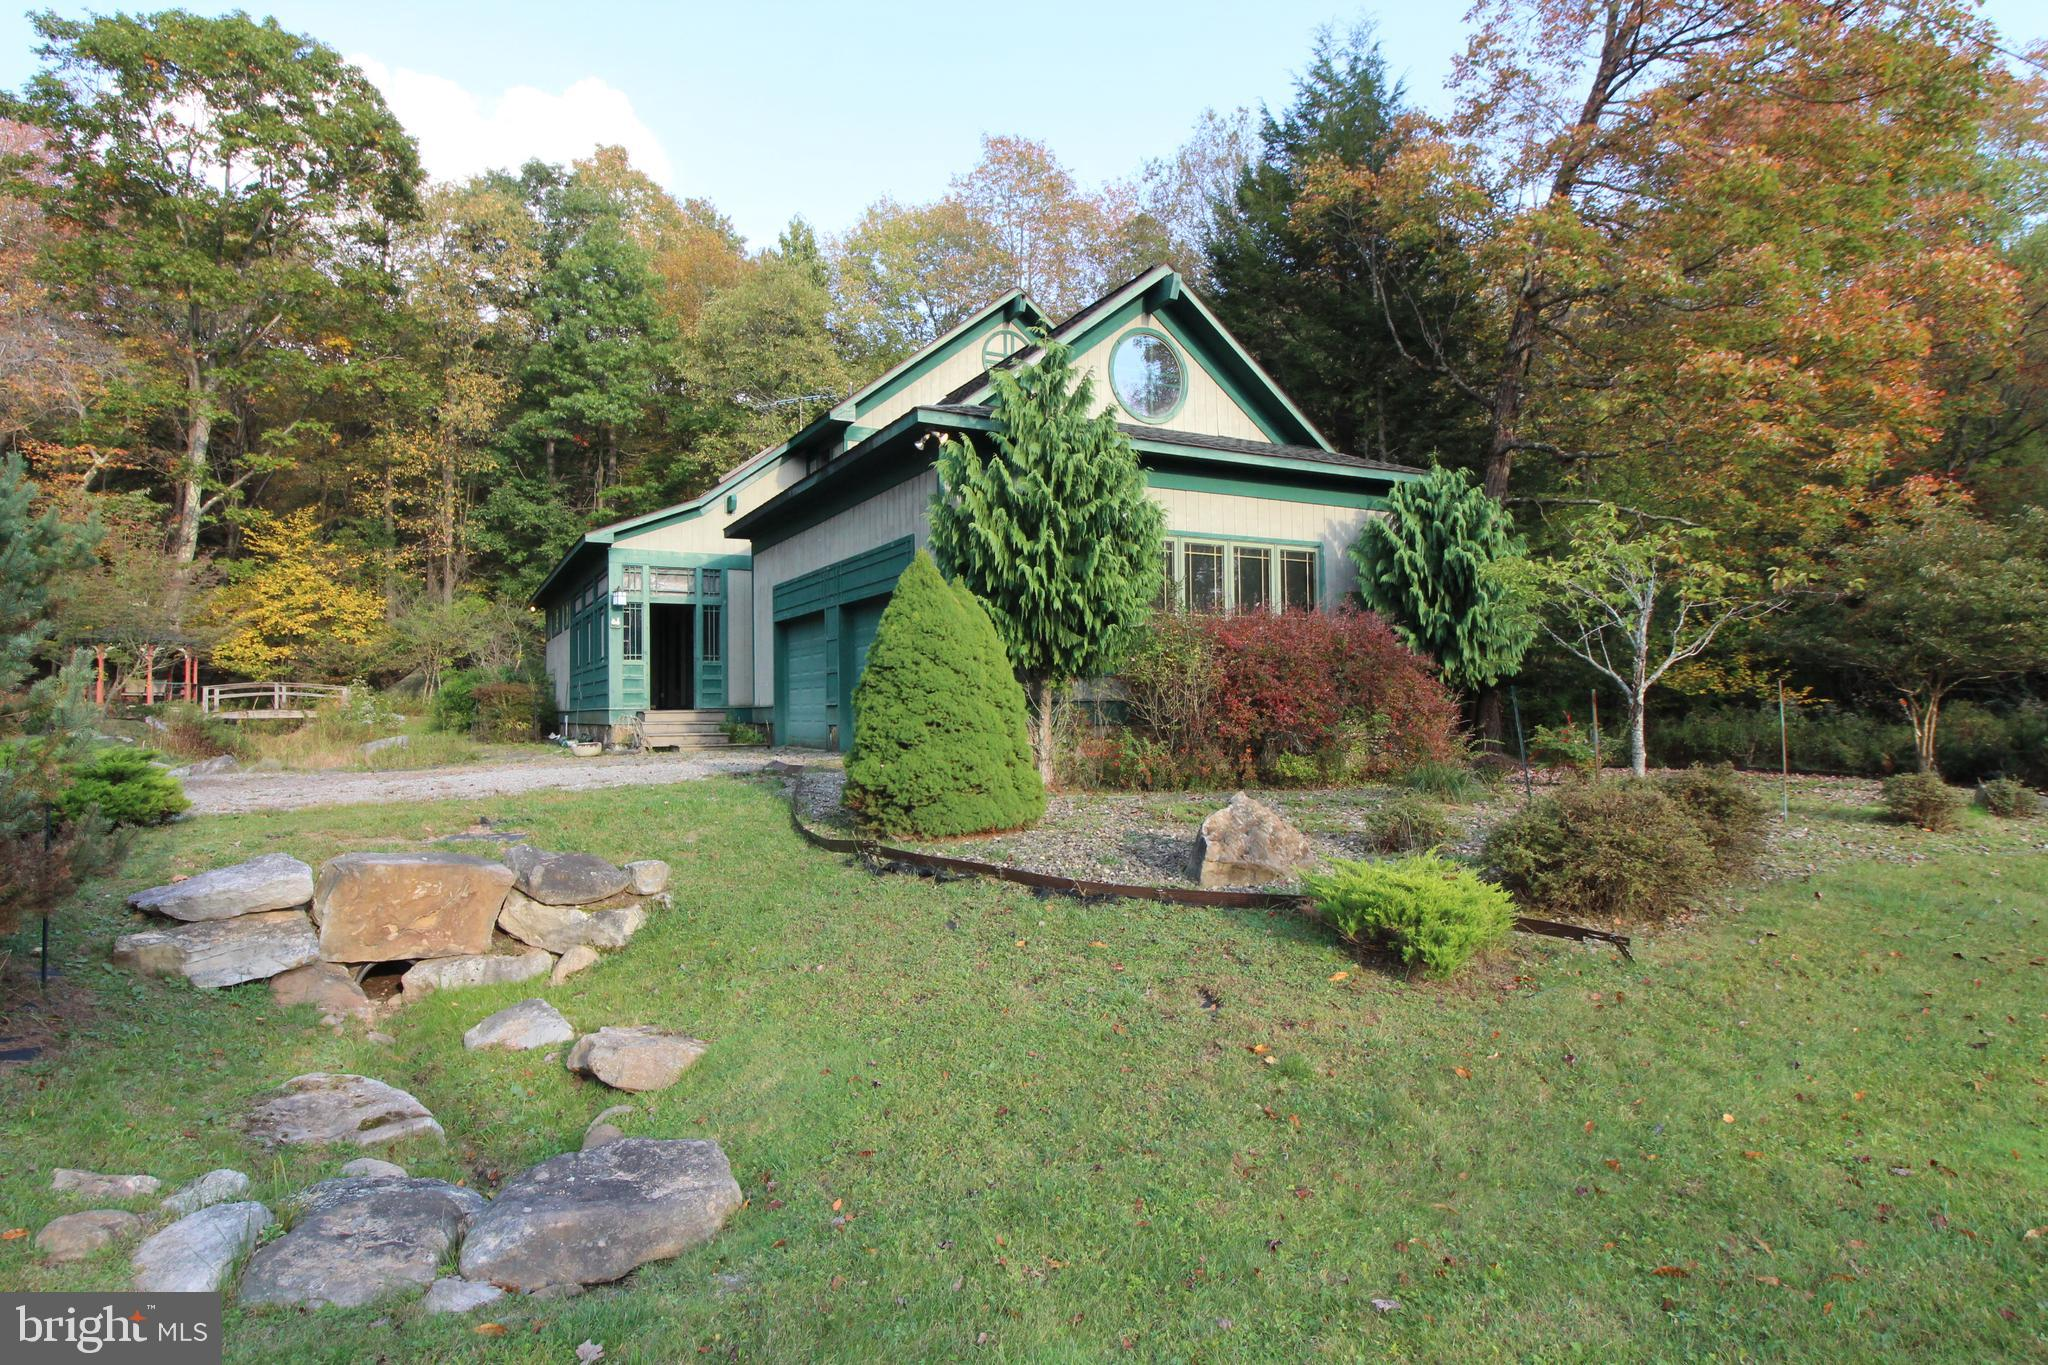 64 WOOD LILY COURT, TERRA ALTA, WV 26764